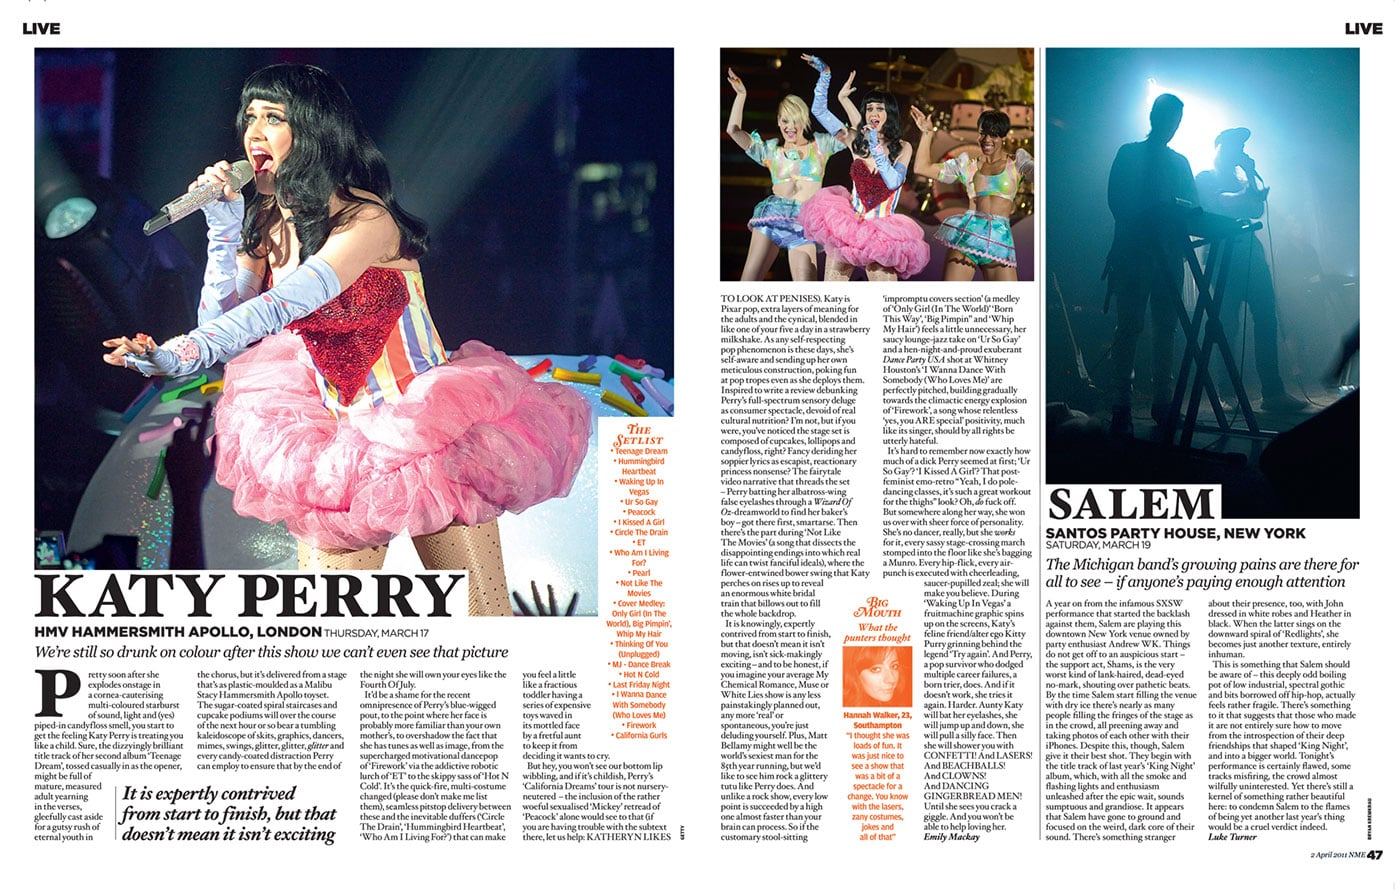 Tearsheets: NME - Salem